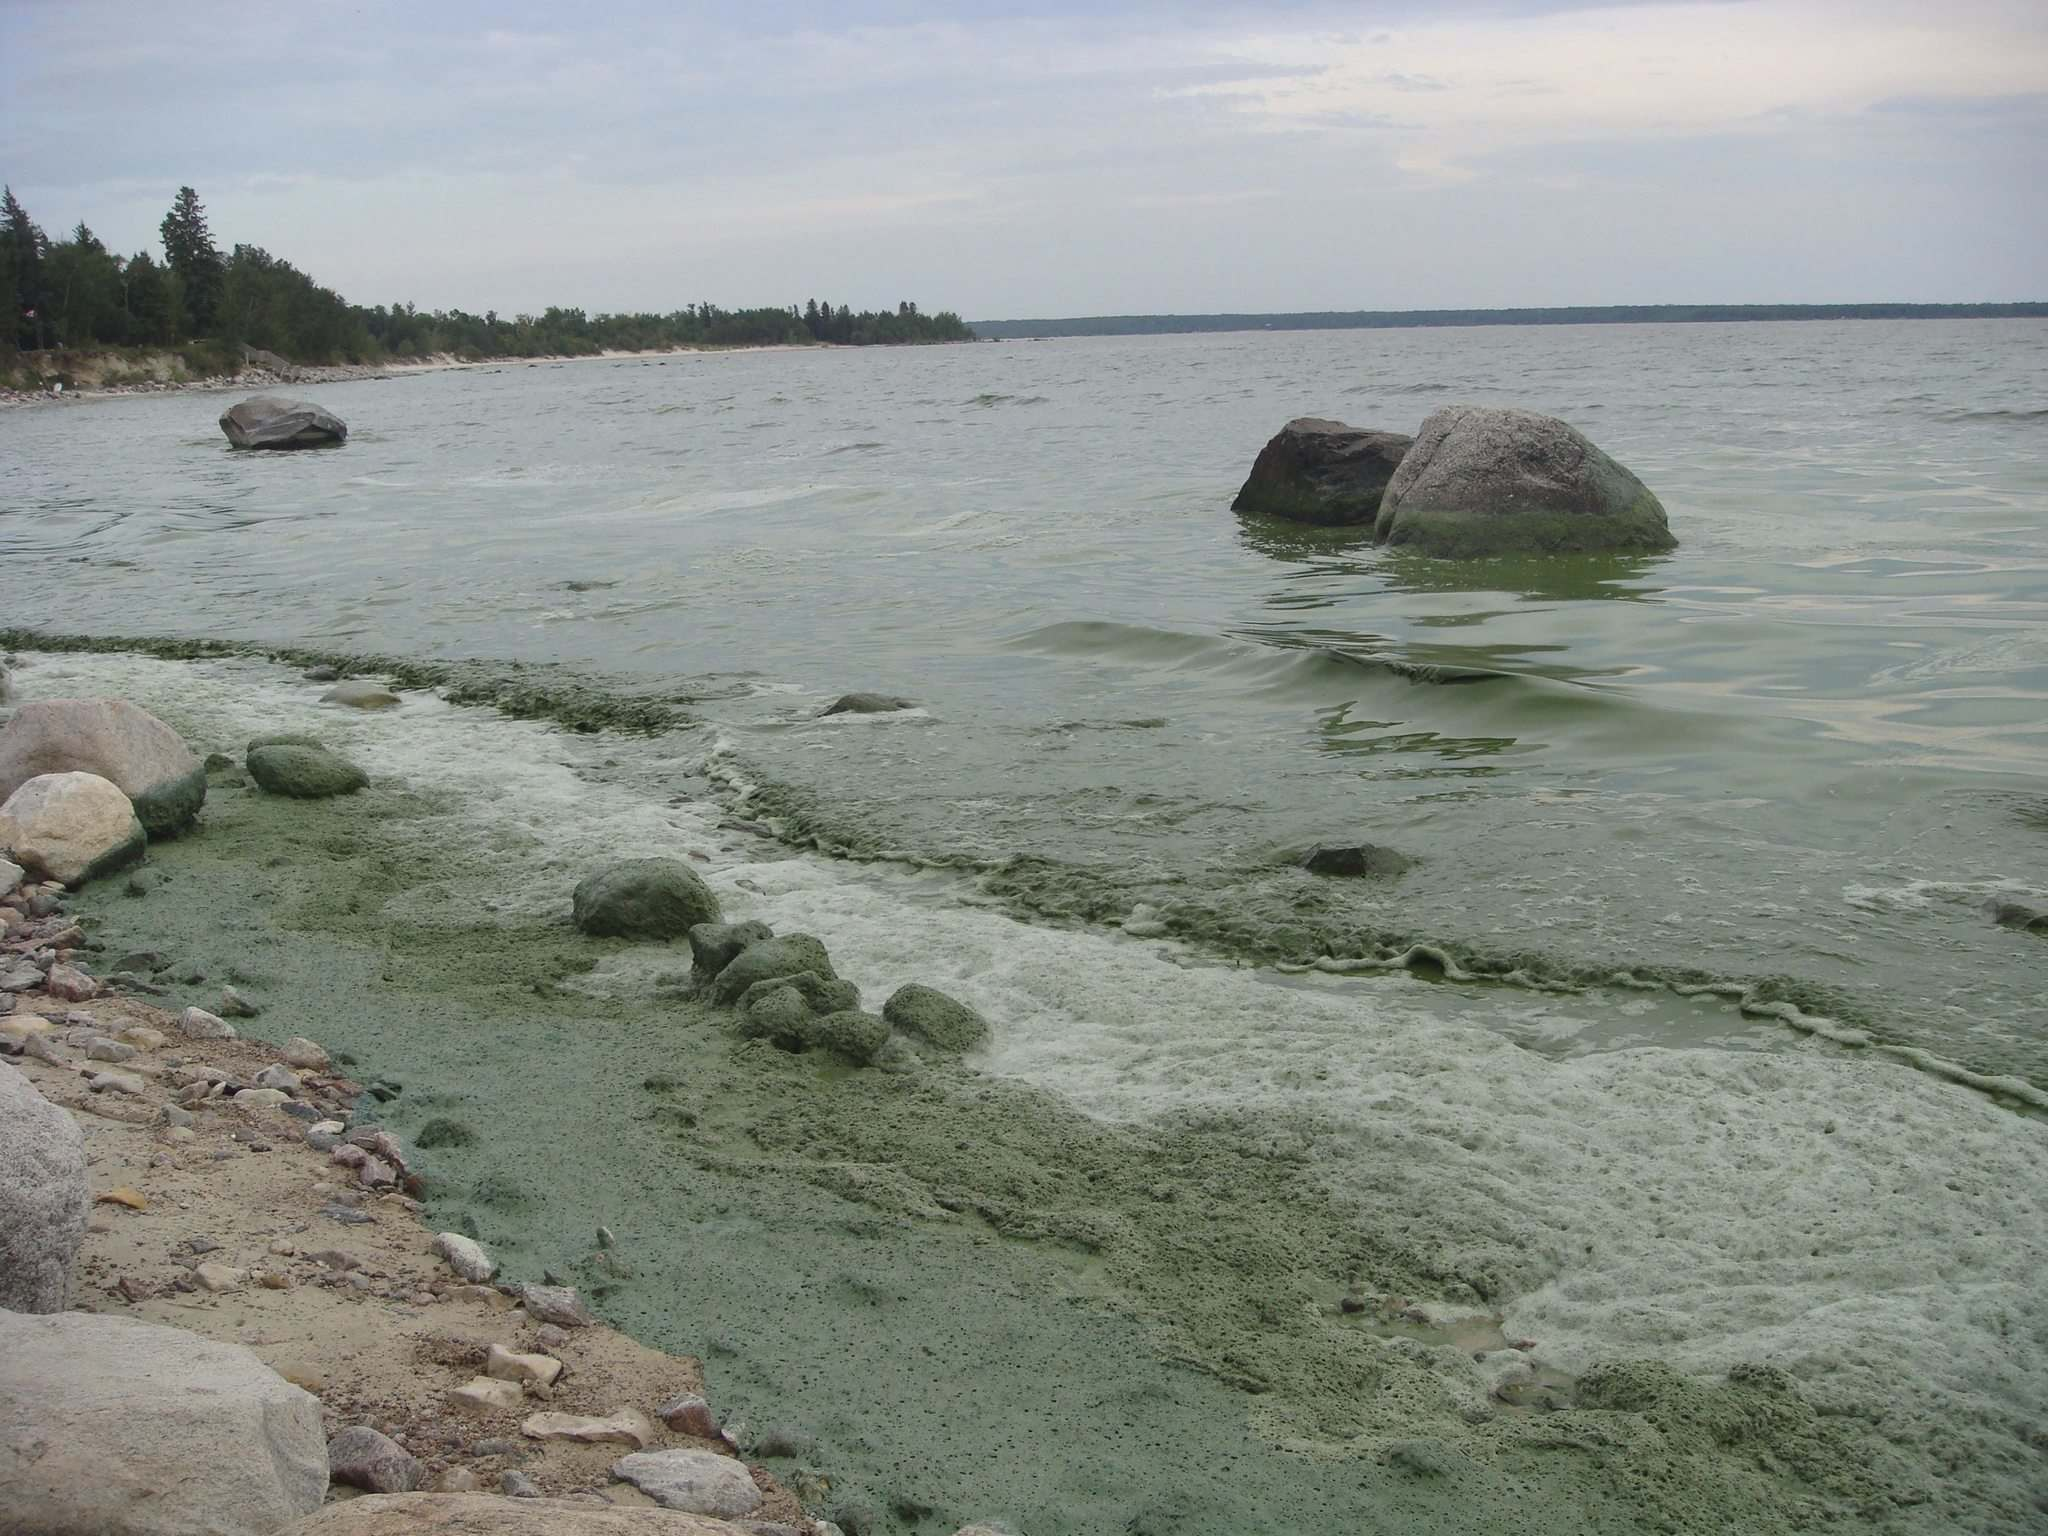 Laurie Bailey / Winnipeg Free Press files</p><p>Victoria Beach algae is seen over the August long weekend in 2010. Nine years later, it's become impossible to ignore our growing algae problem. Other places have taken steps to protect the water, and we should be doing the same.</p></p>